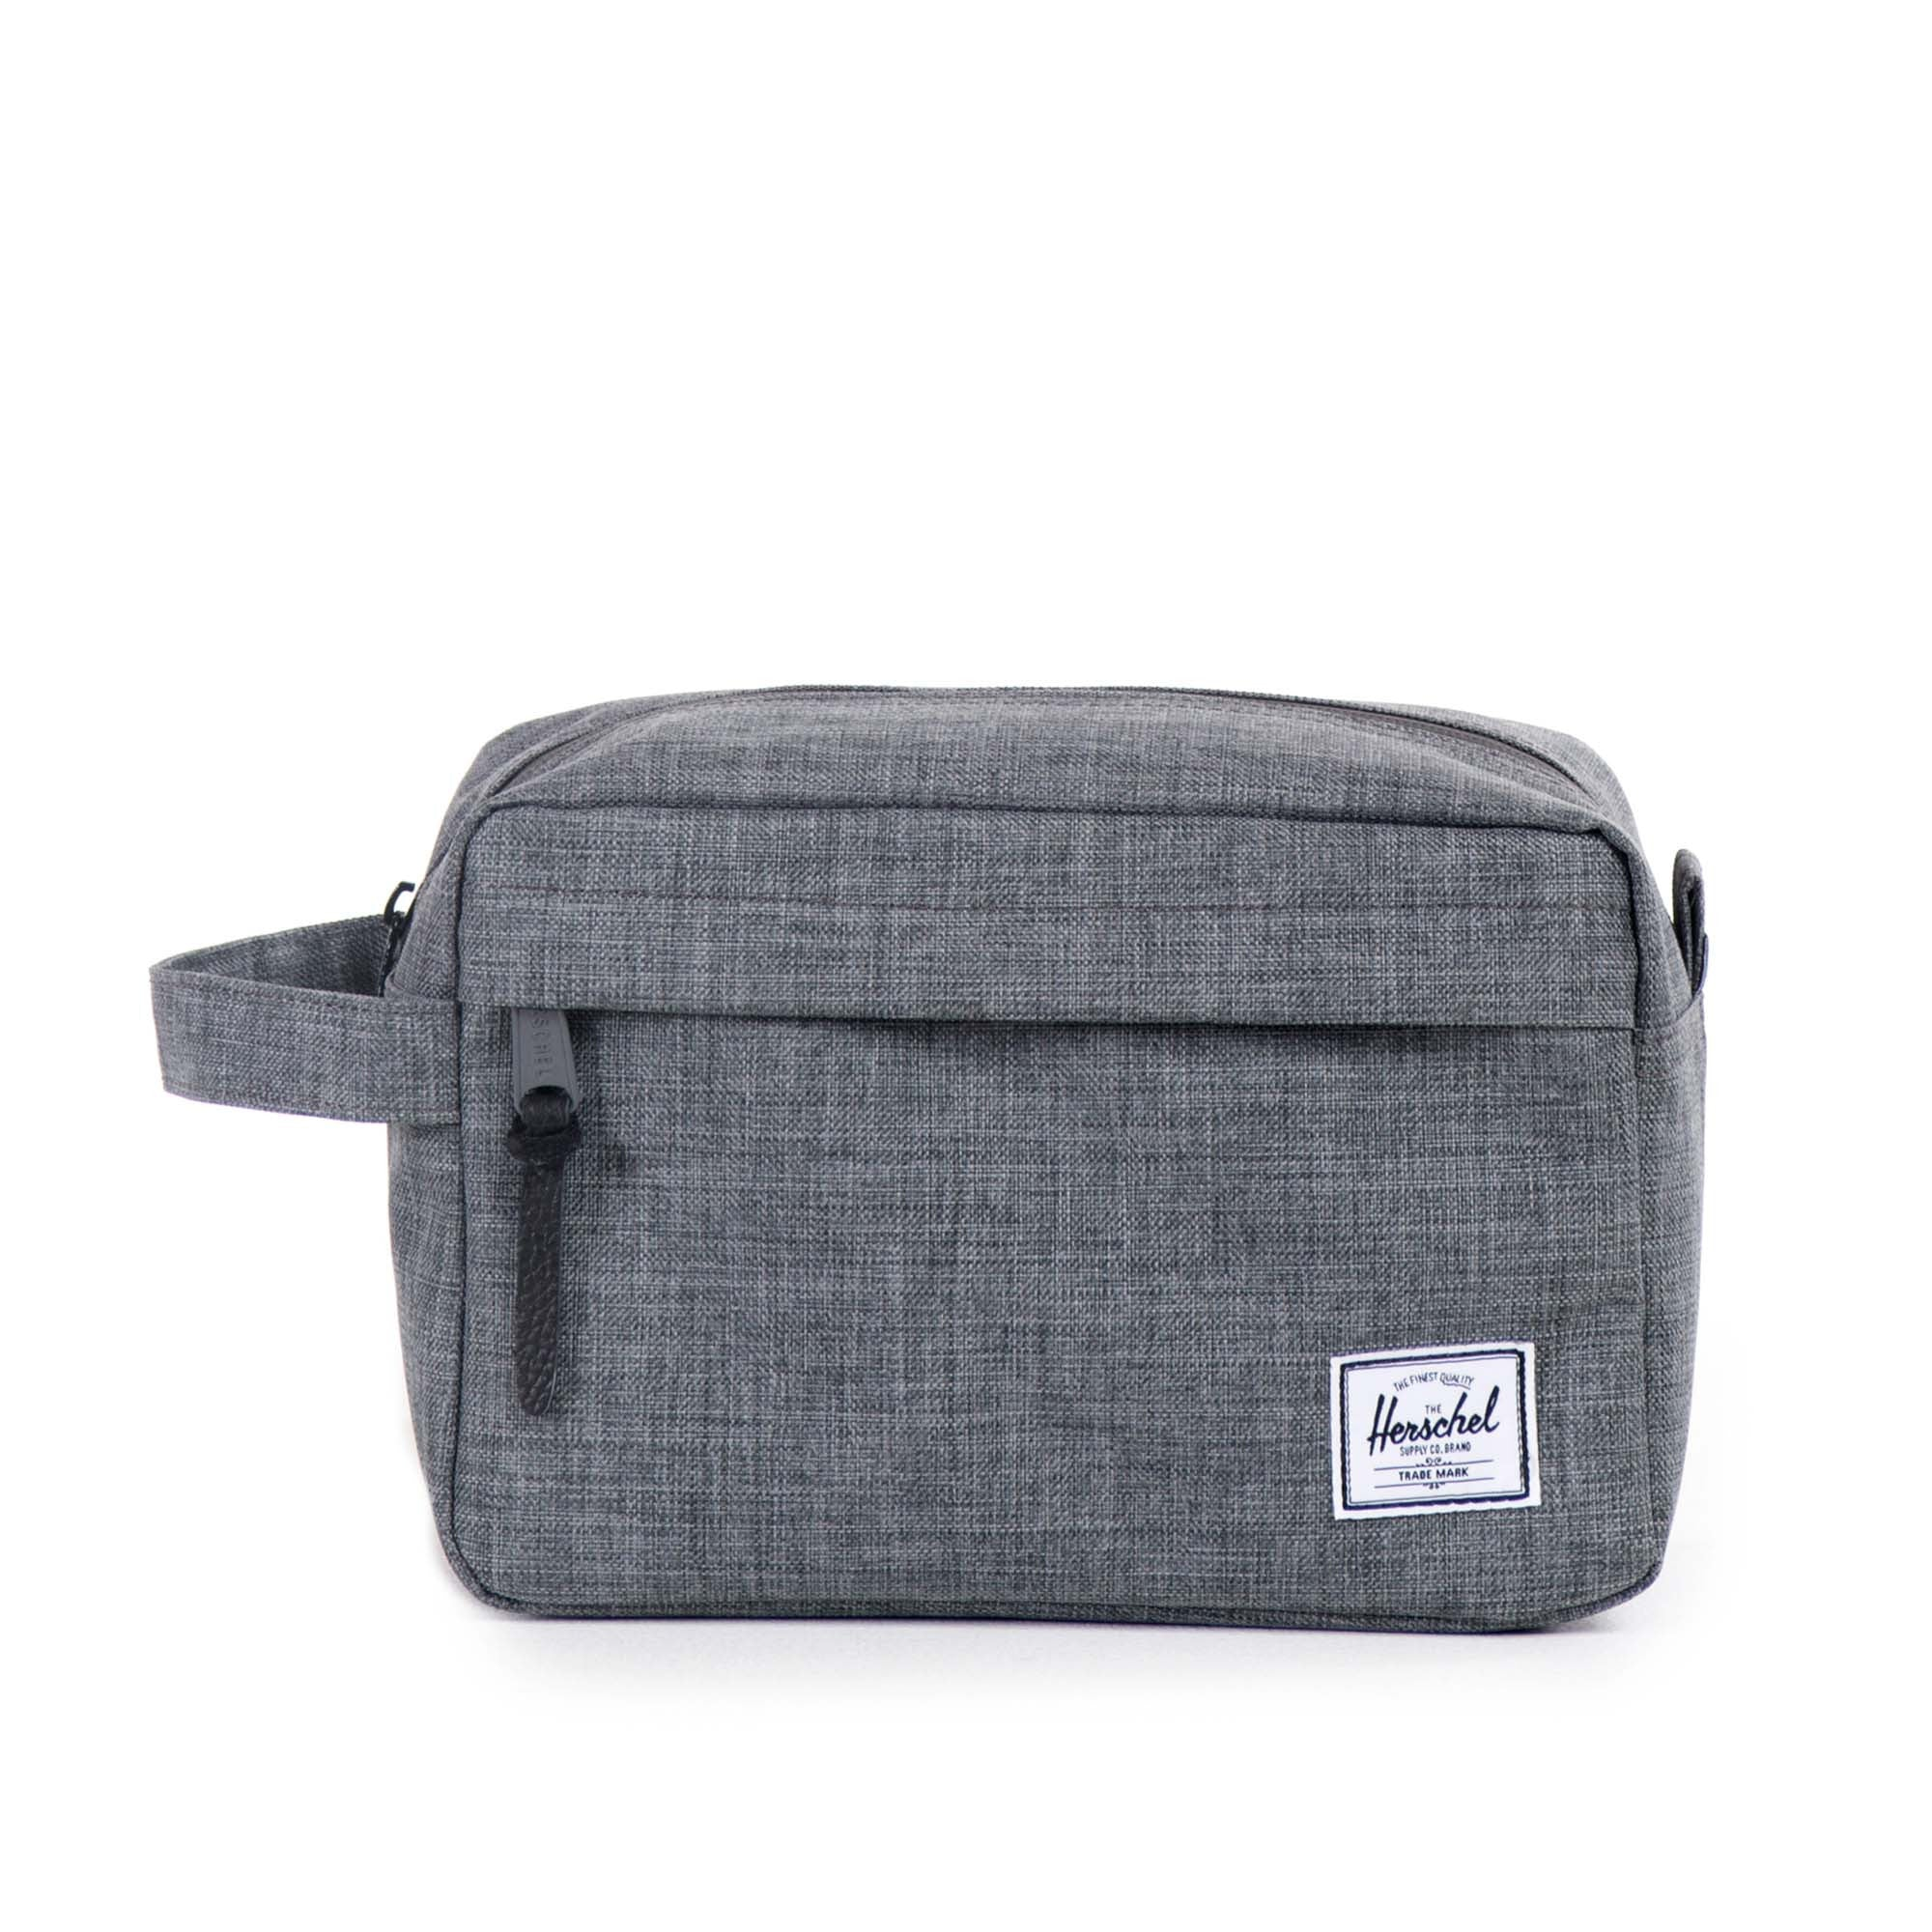 CHAPTER TRAVEL KIT - CHARCOAL